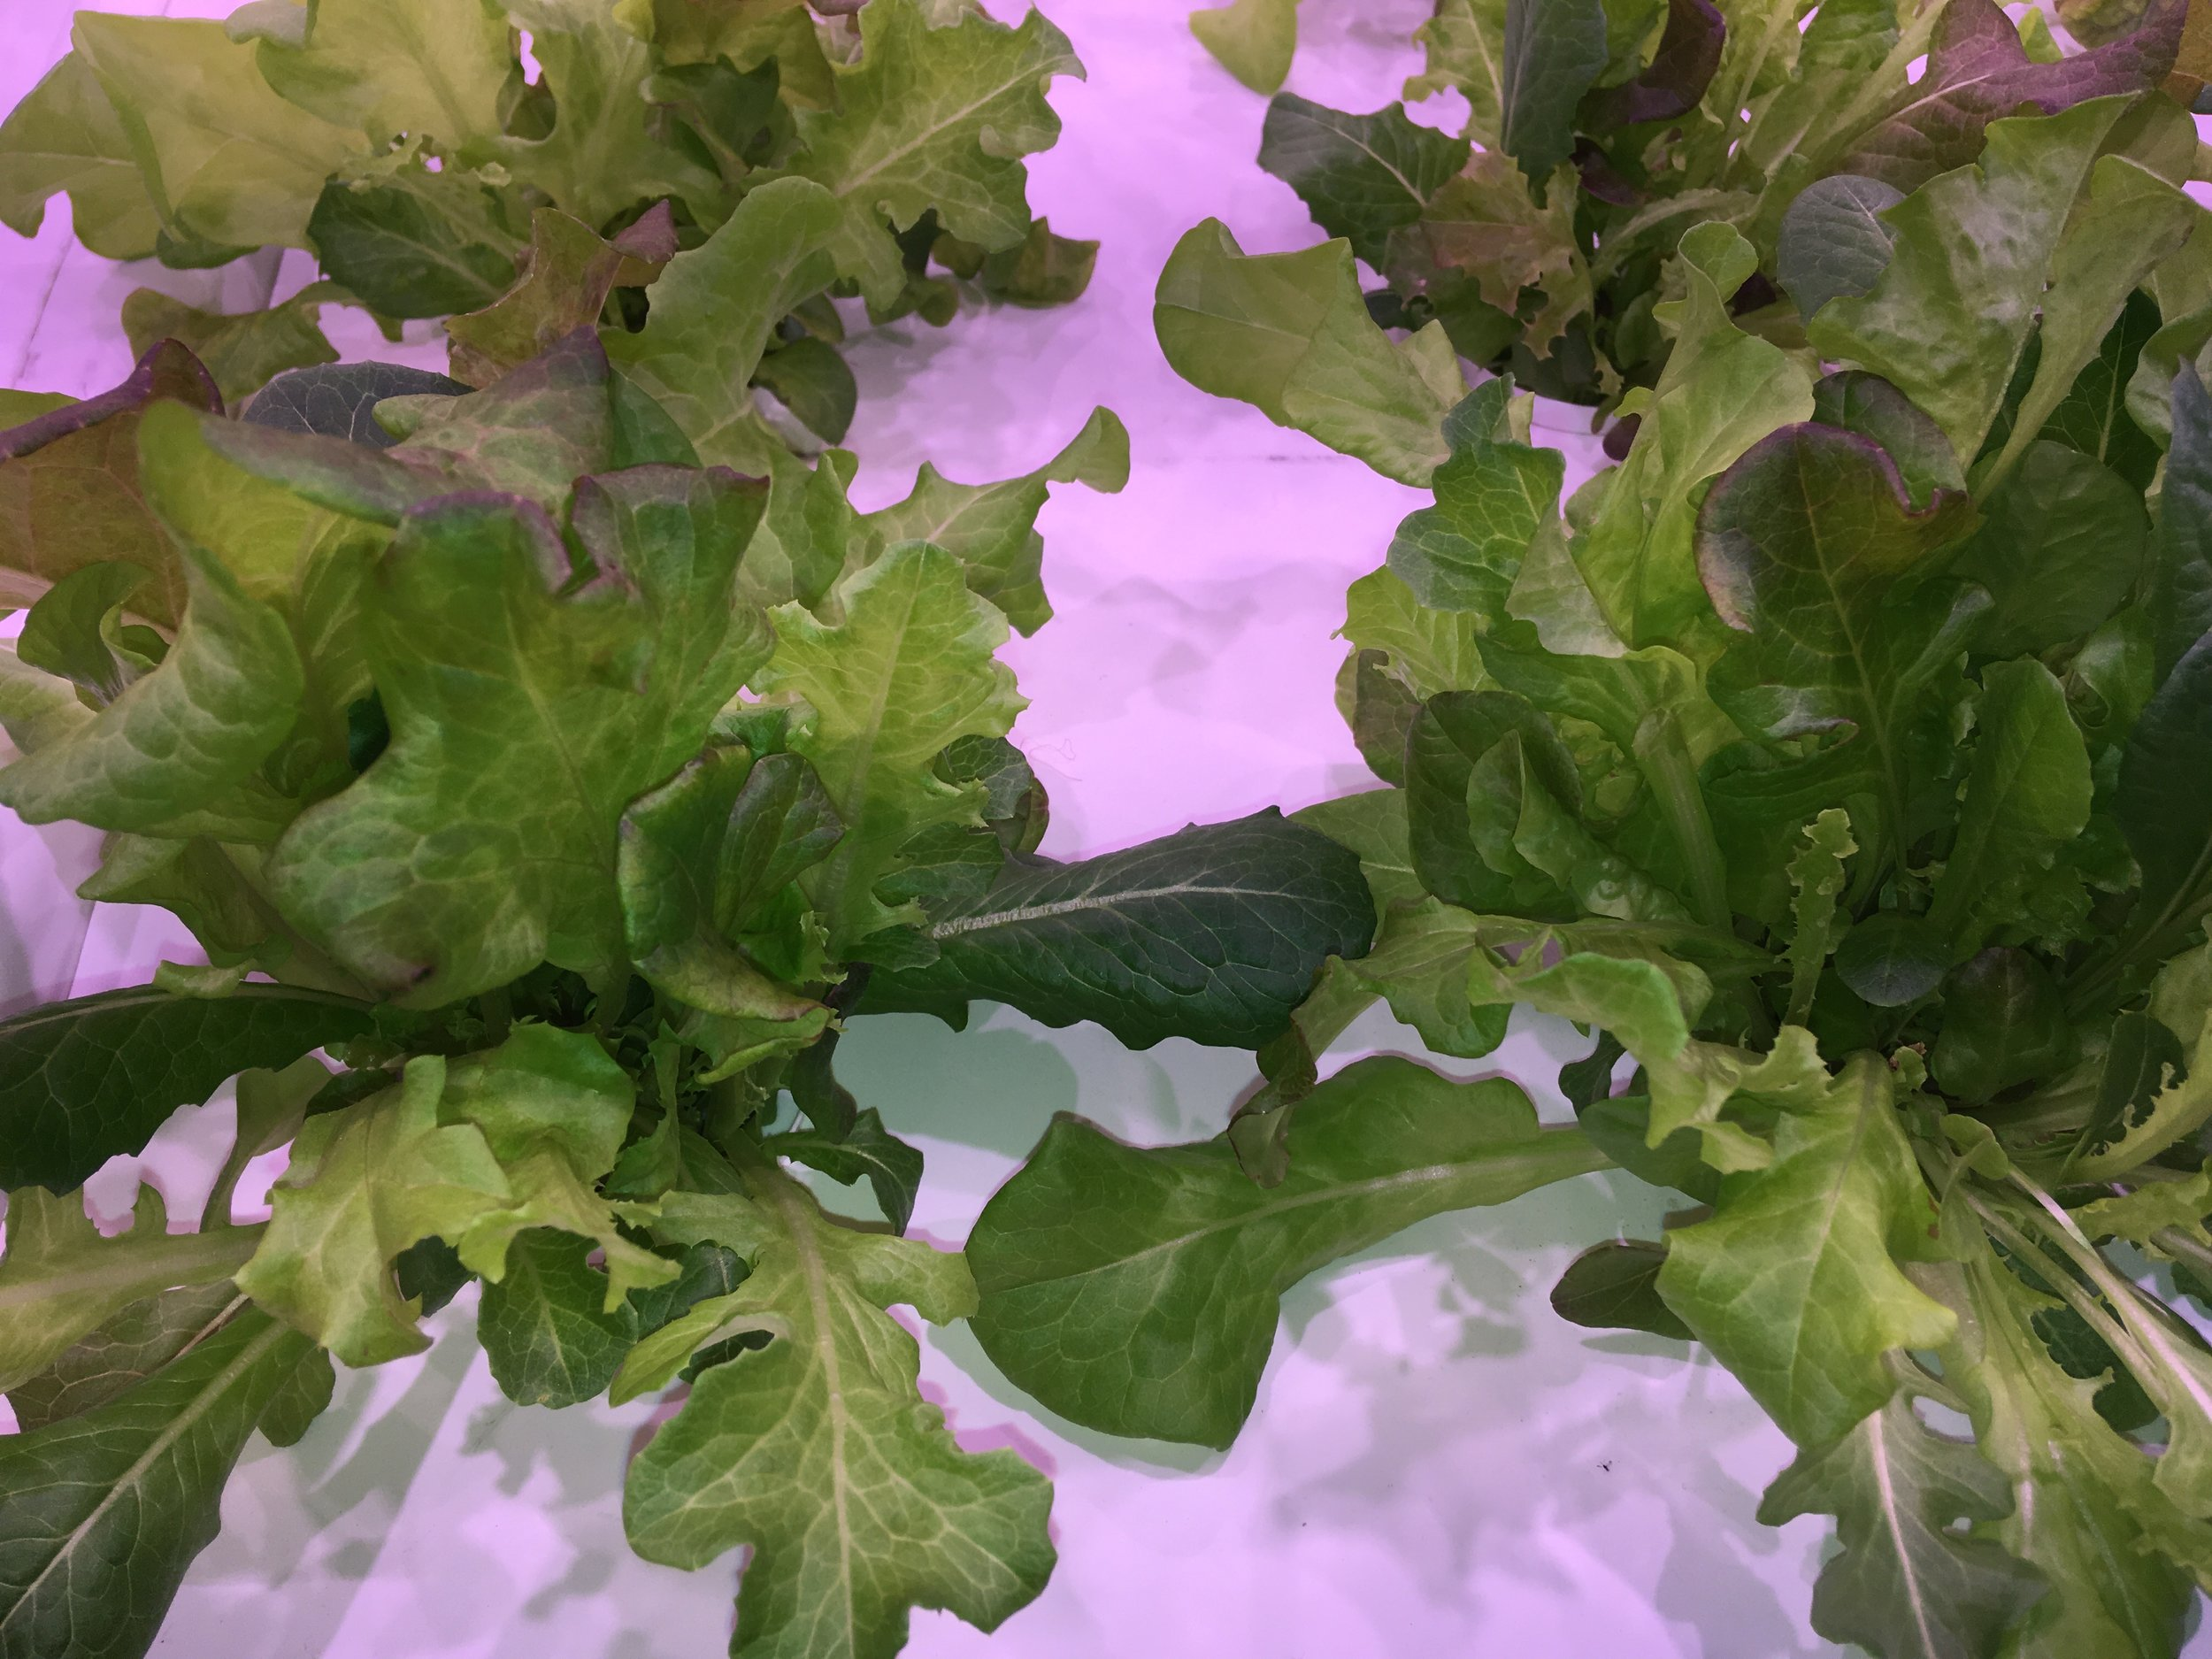 LF-ONE excels at growing leafy greens.